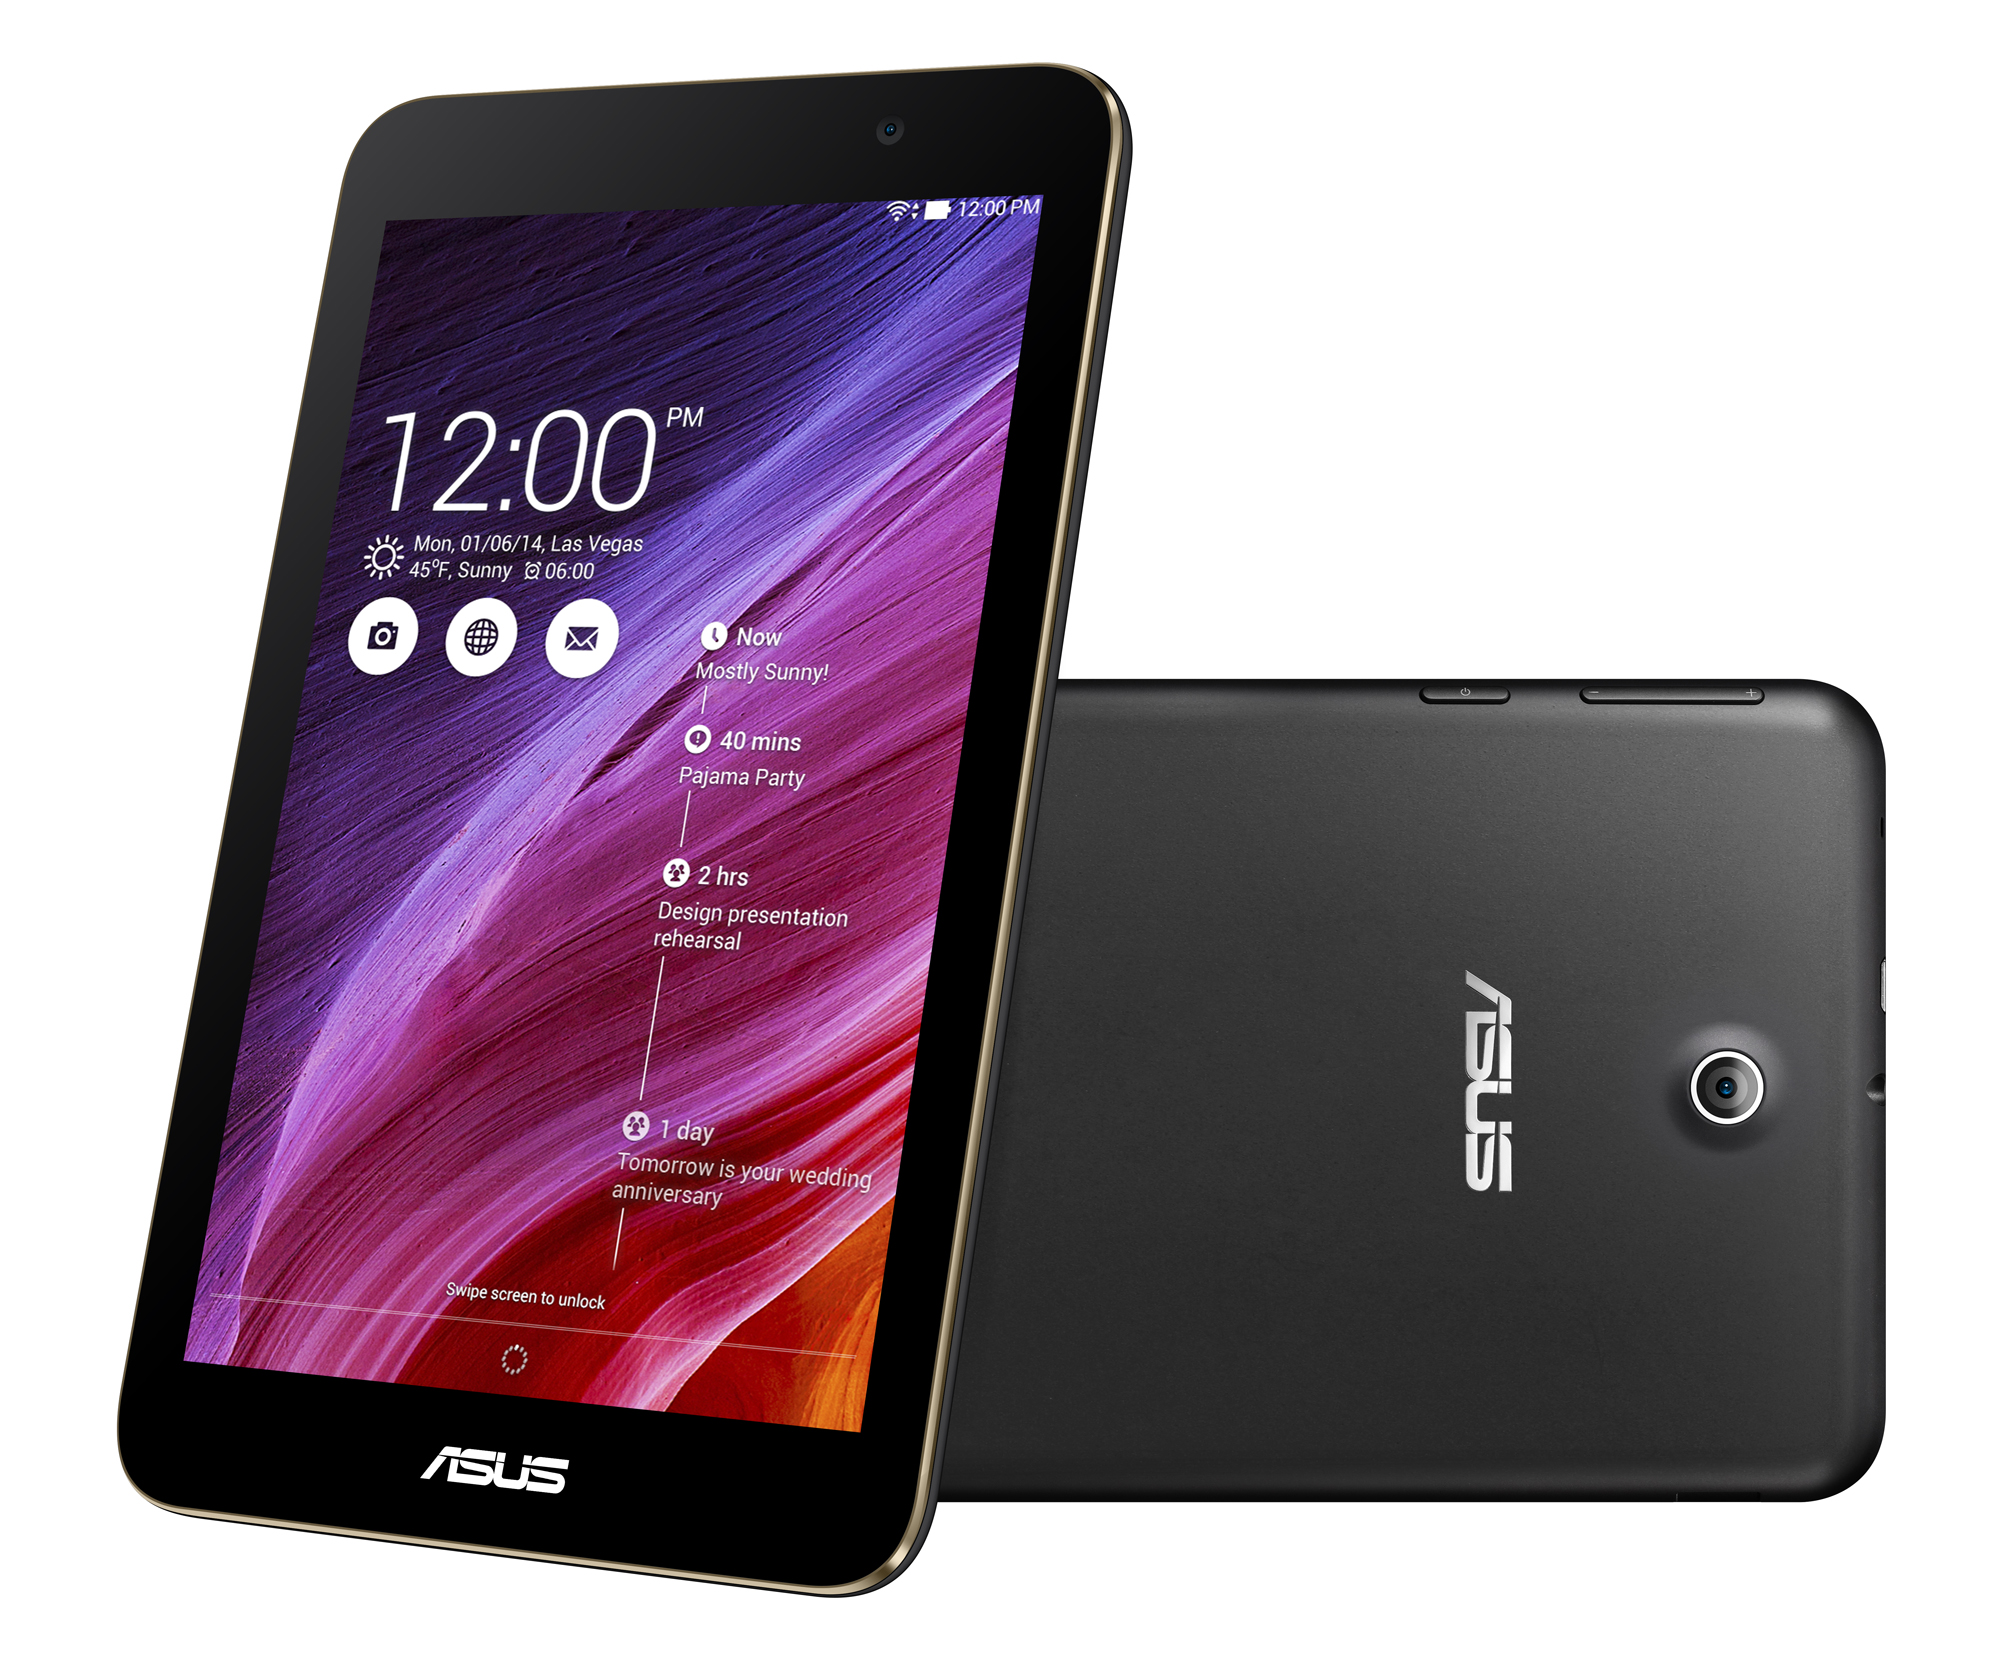 ASUS MeMO Pad 7 (ME176CX) 7-inch Tablet (Black) - (Intel Atom Z3745 1.33GHz, 1GB RAM, 16GB ...